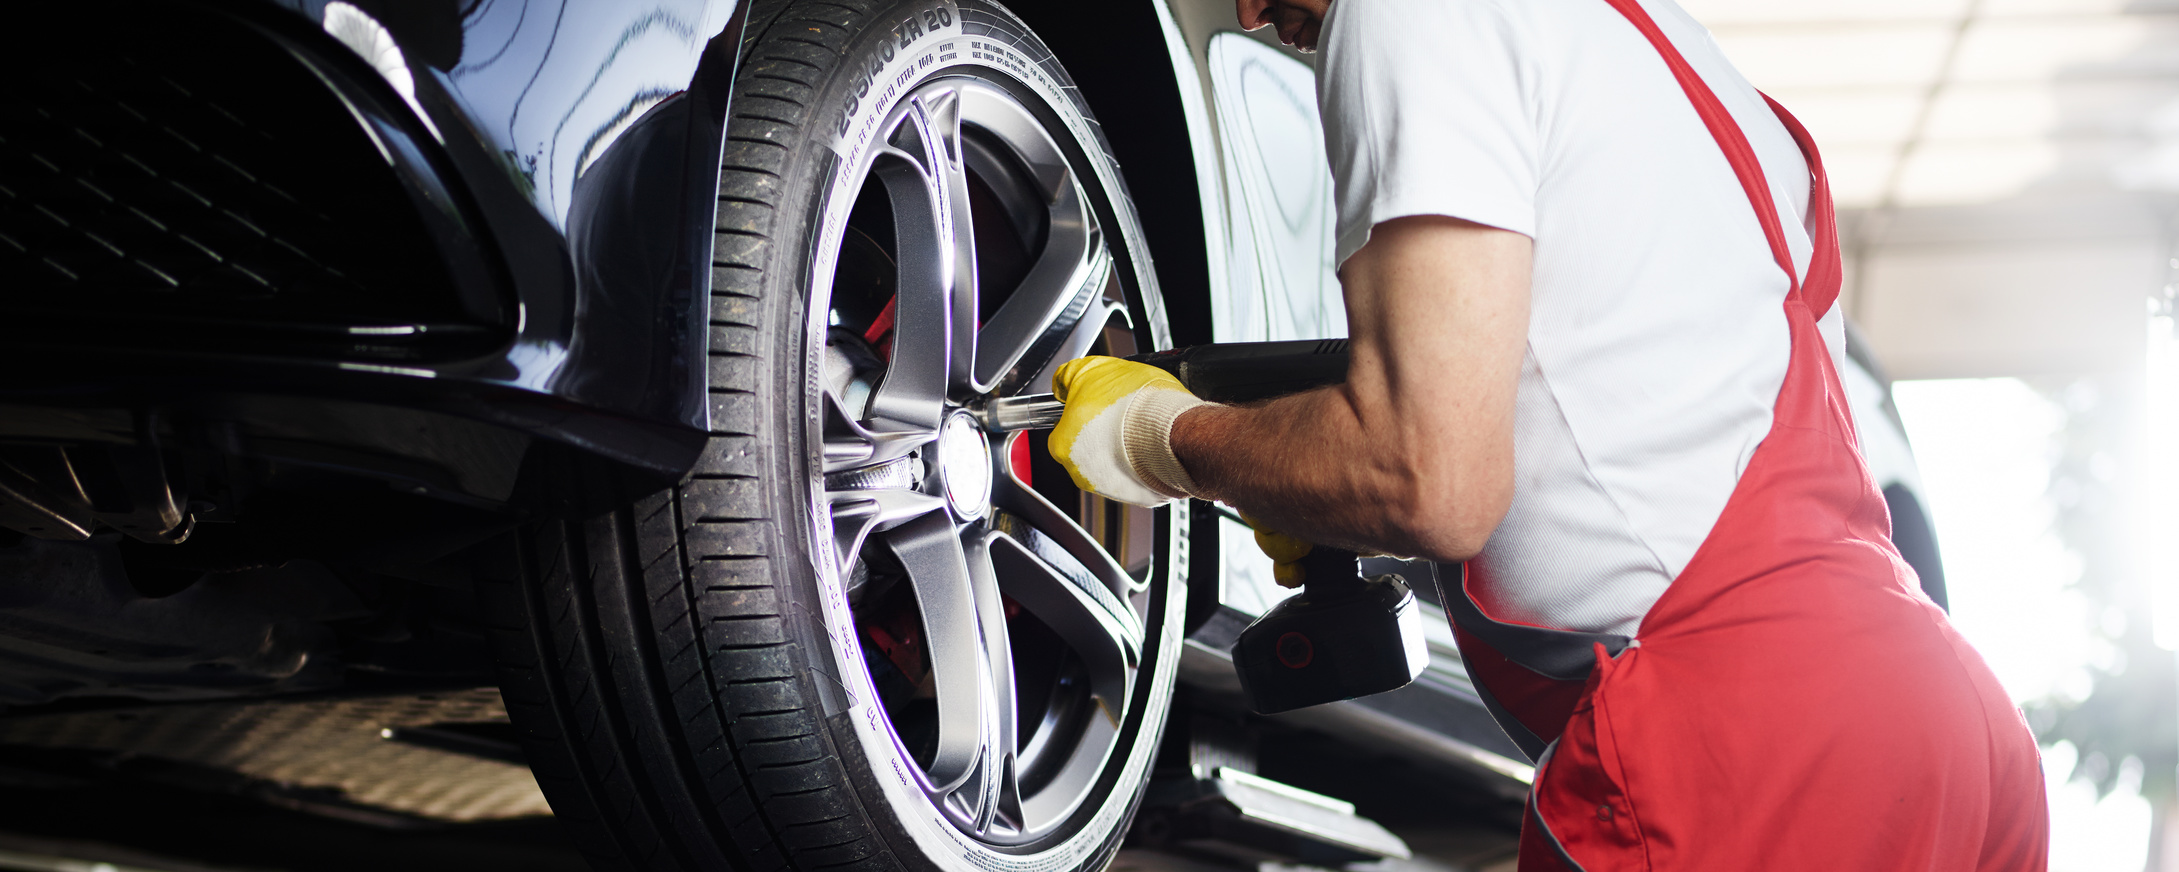 To fit a tyre with impact screwdriver